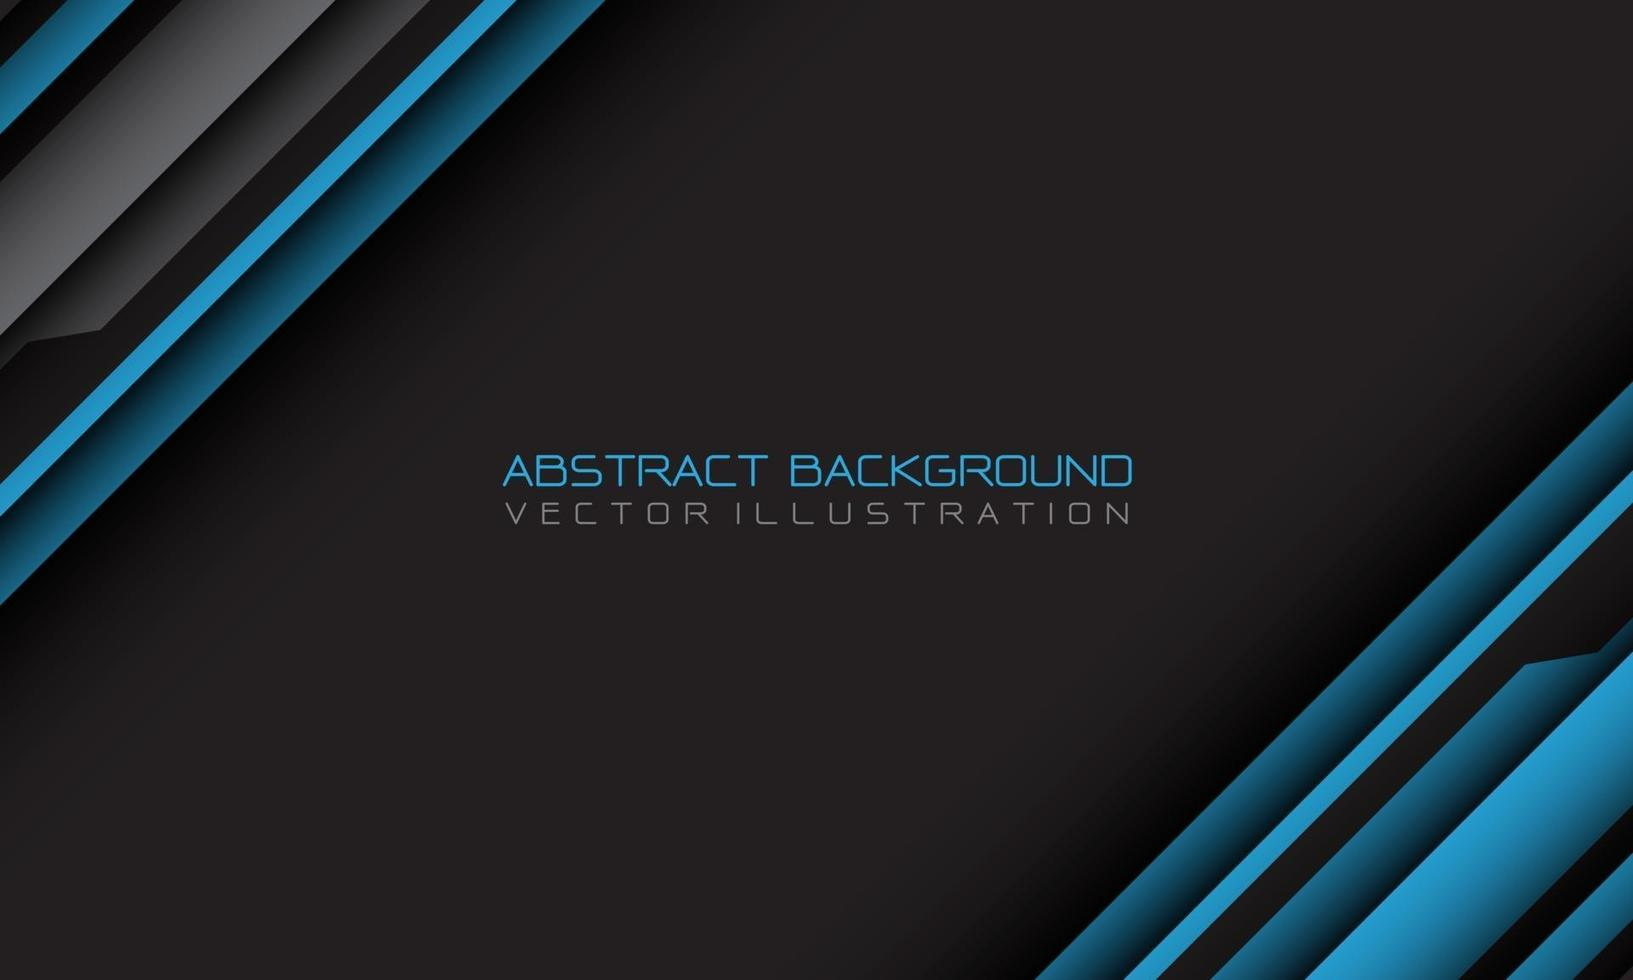 Abstract blue grey cyber geometric slash with blank space and text design modern futuristic background vector illustration.